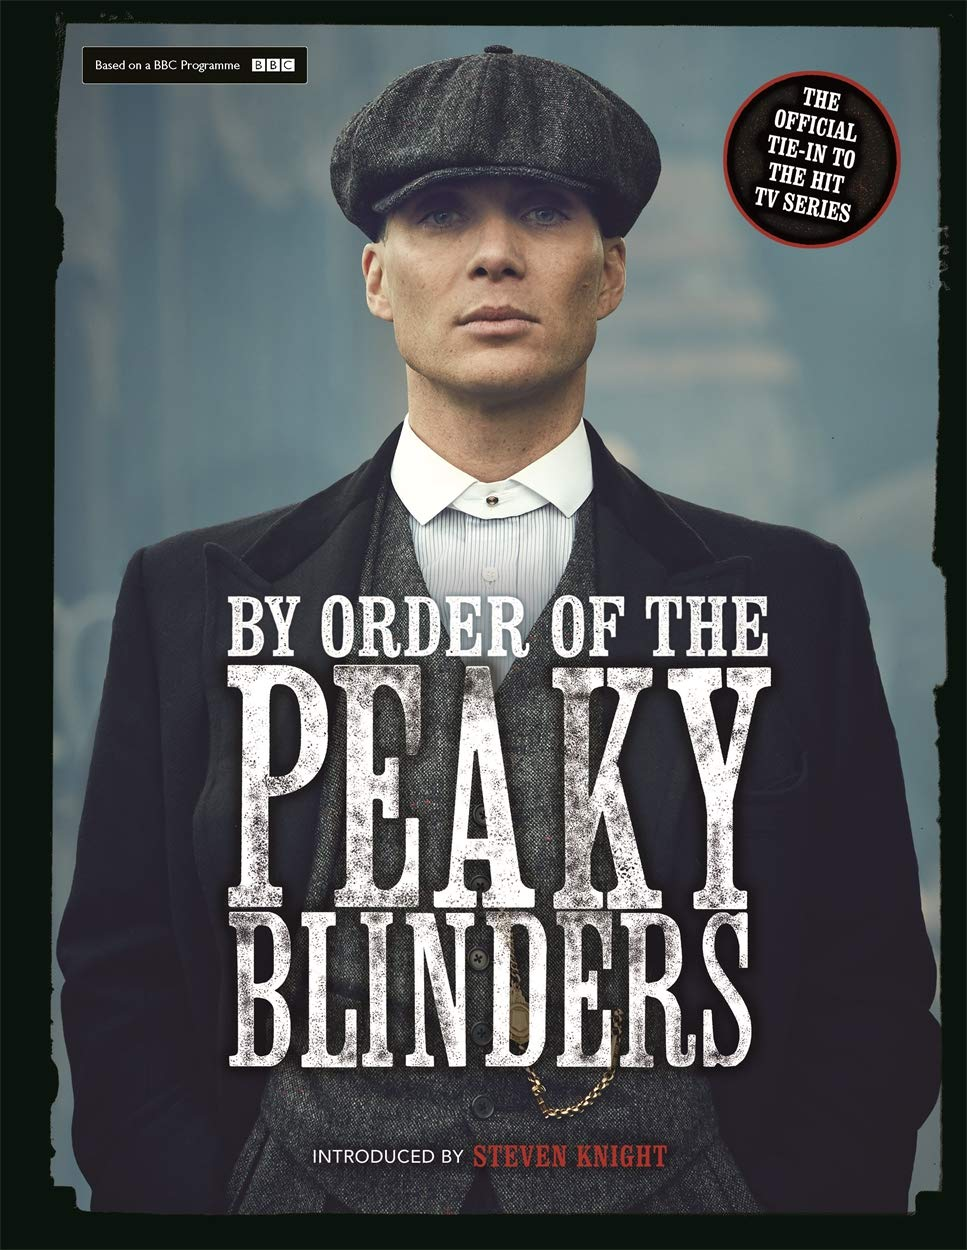 By Order Of The Peaky Blinders  The Official Companion To The Hit TV Series